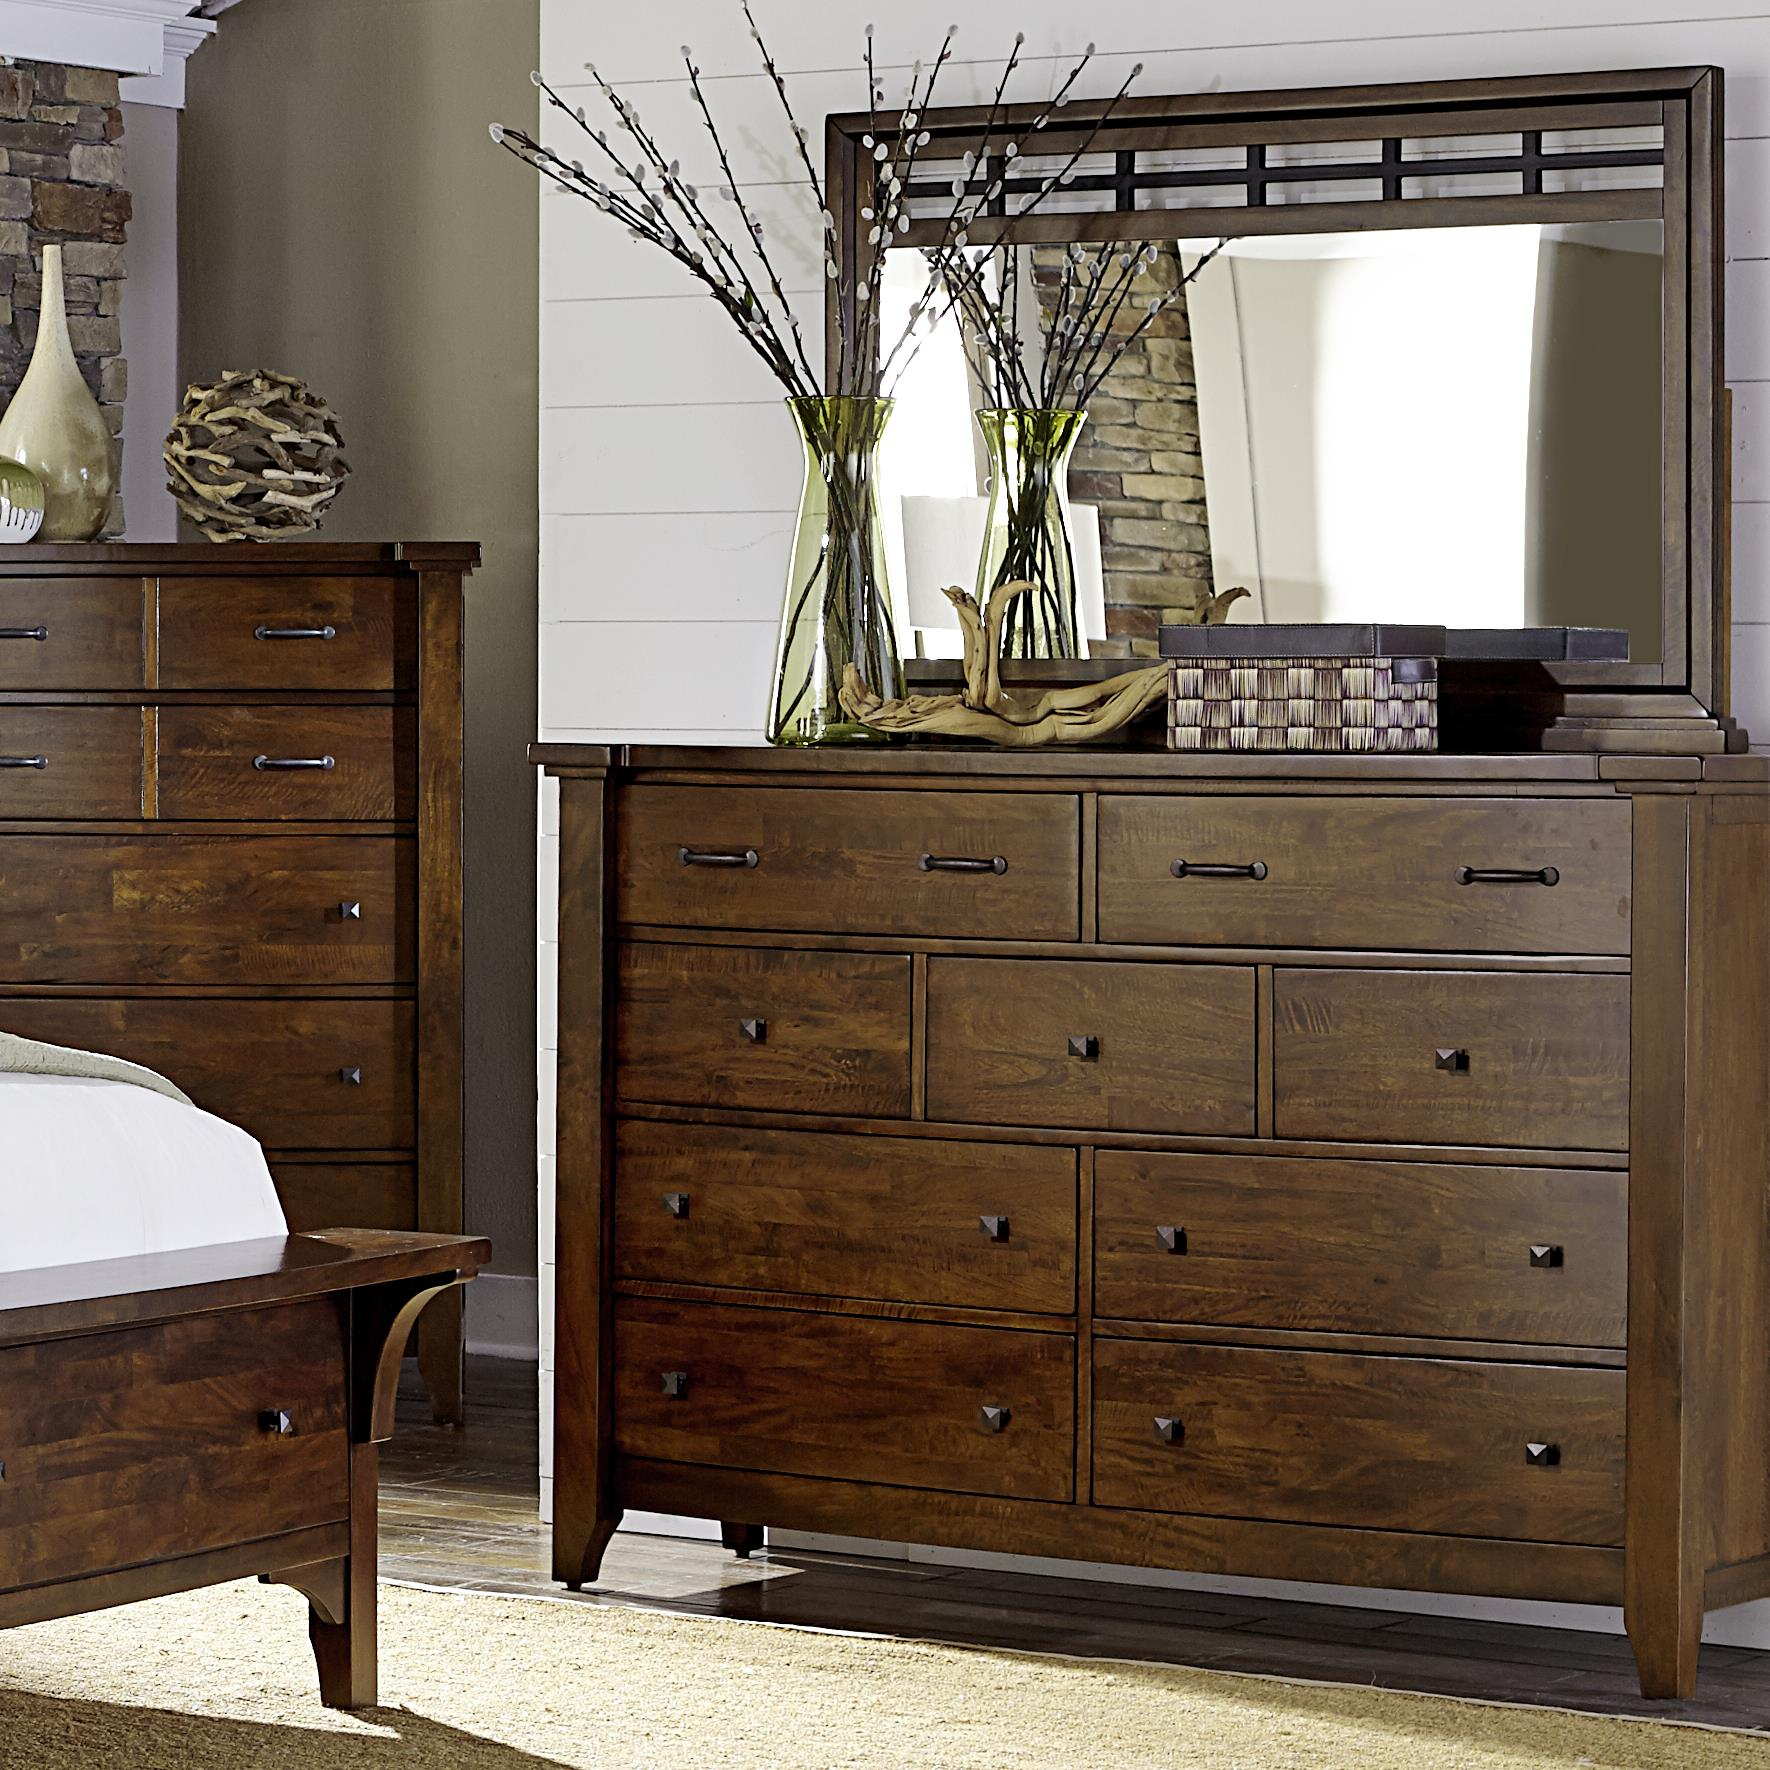 Napa furniture designs whistler retreat solid mango 9 drawer chest mirror darvin furniture for Napa valley bedroom furniture